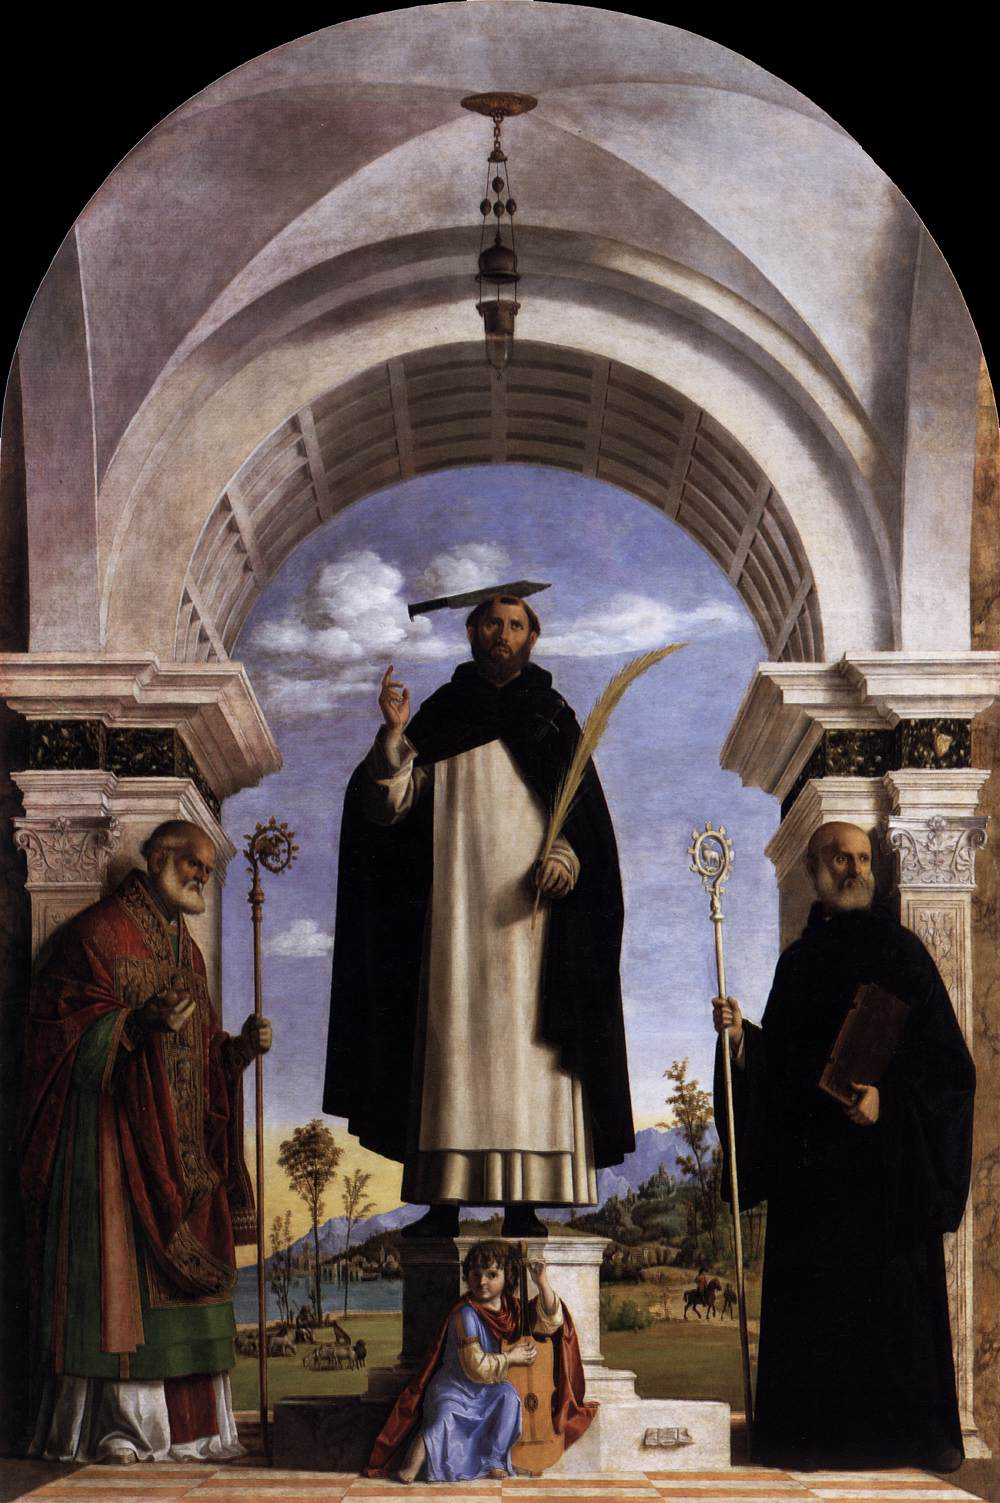 St. Peter Martyr with St. Nicholas of Bari, St. Benedict and an Angel Musician, 1504